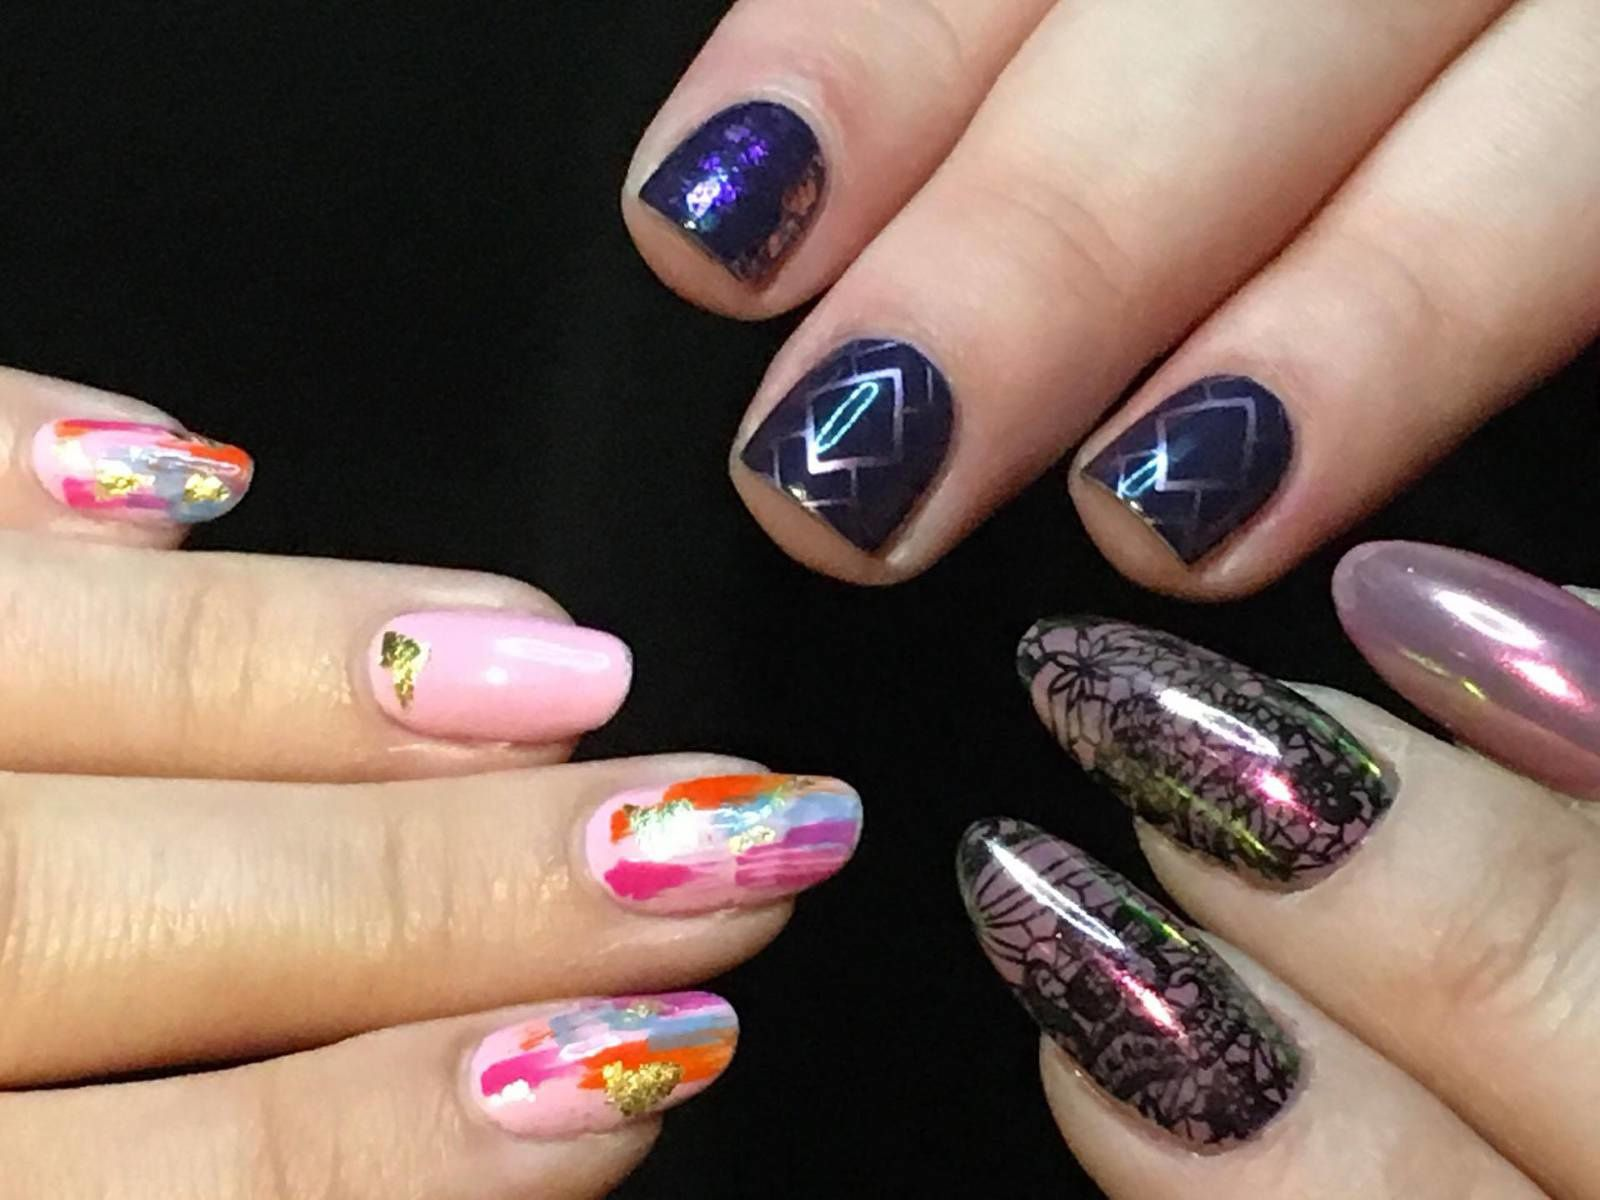 Obligatory blogger nails pic. Myself (left), The Nailasaurus (top) and Natasha Lee (right)